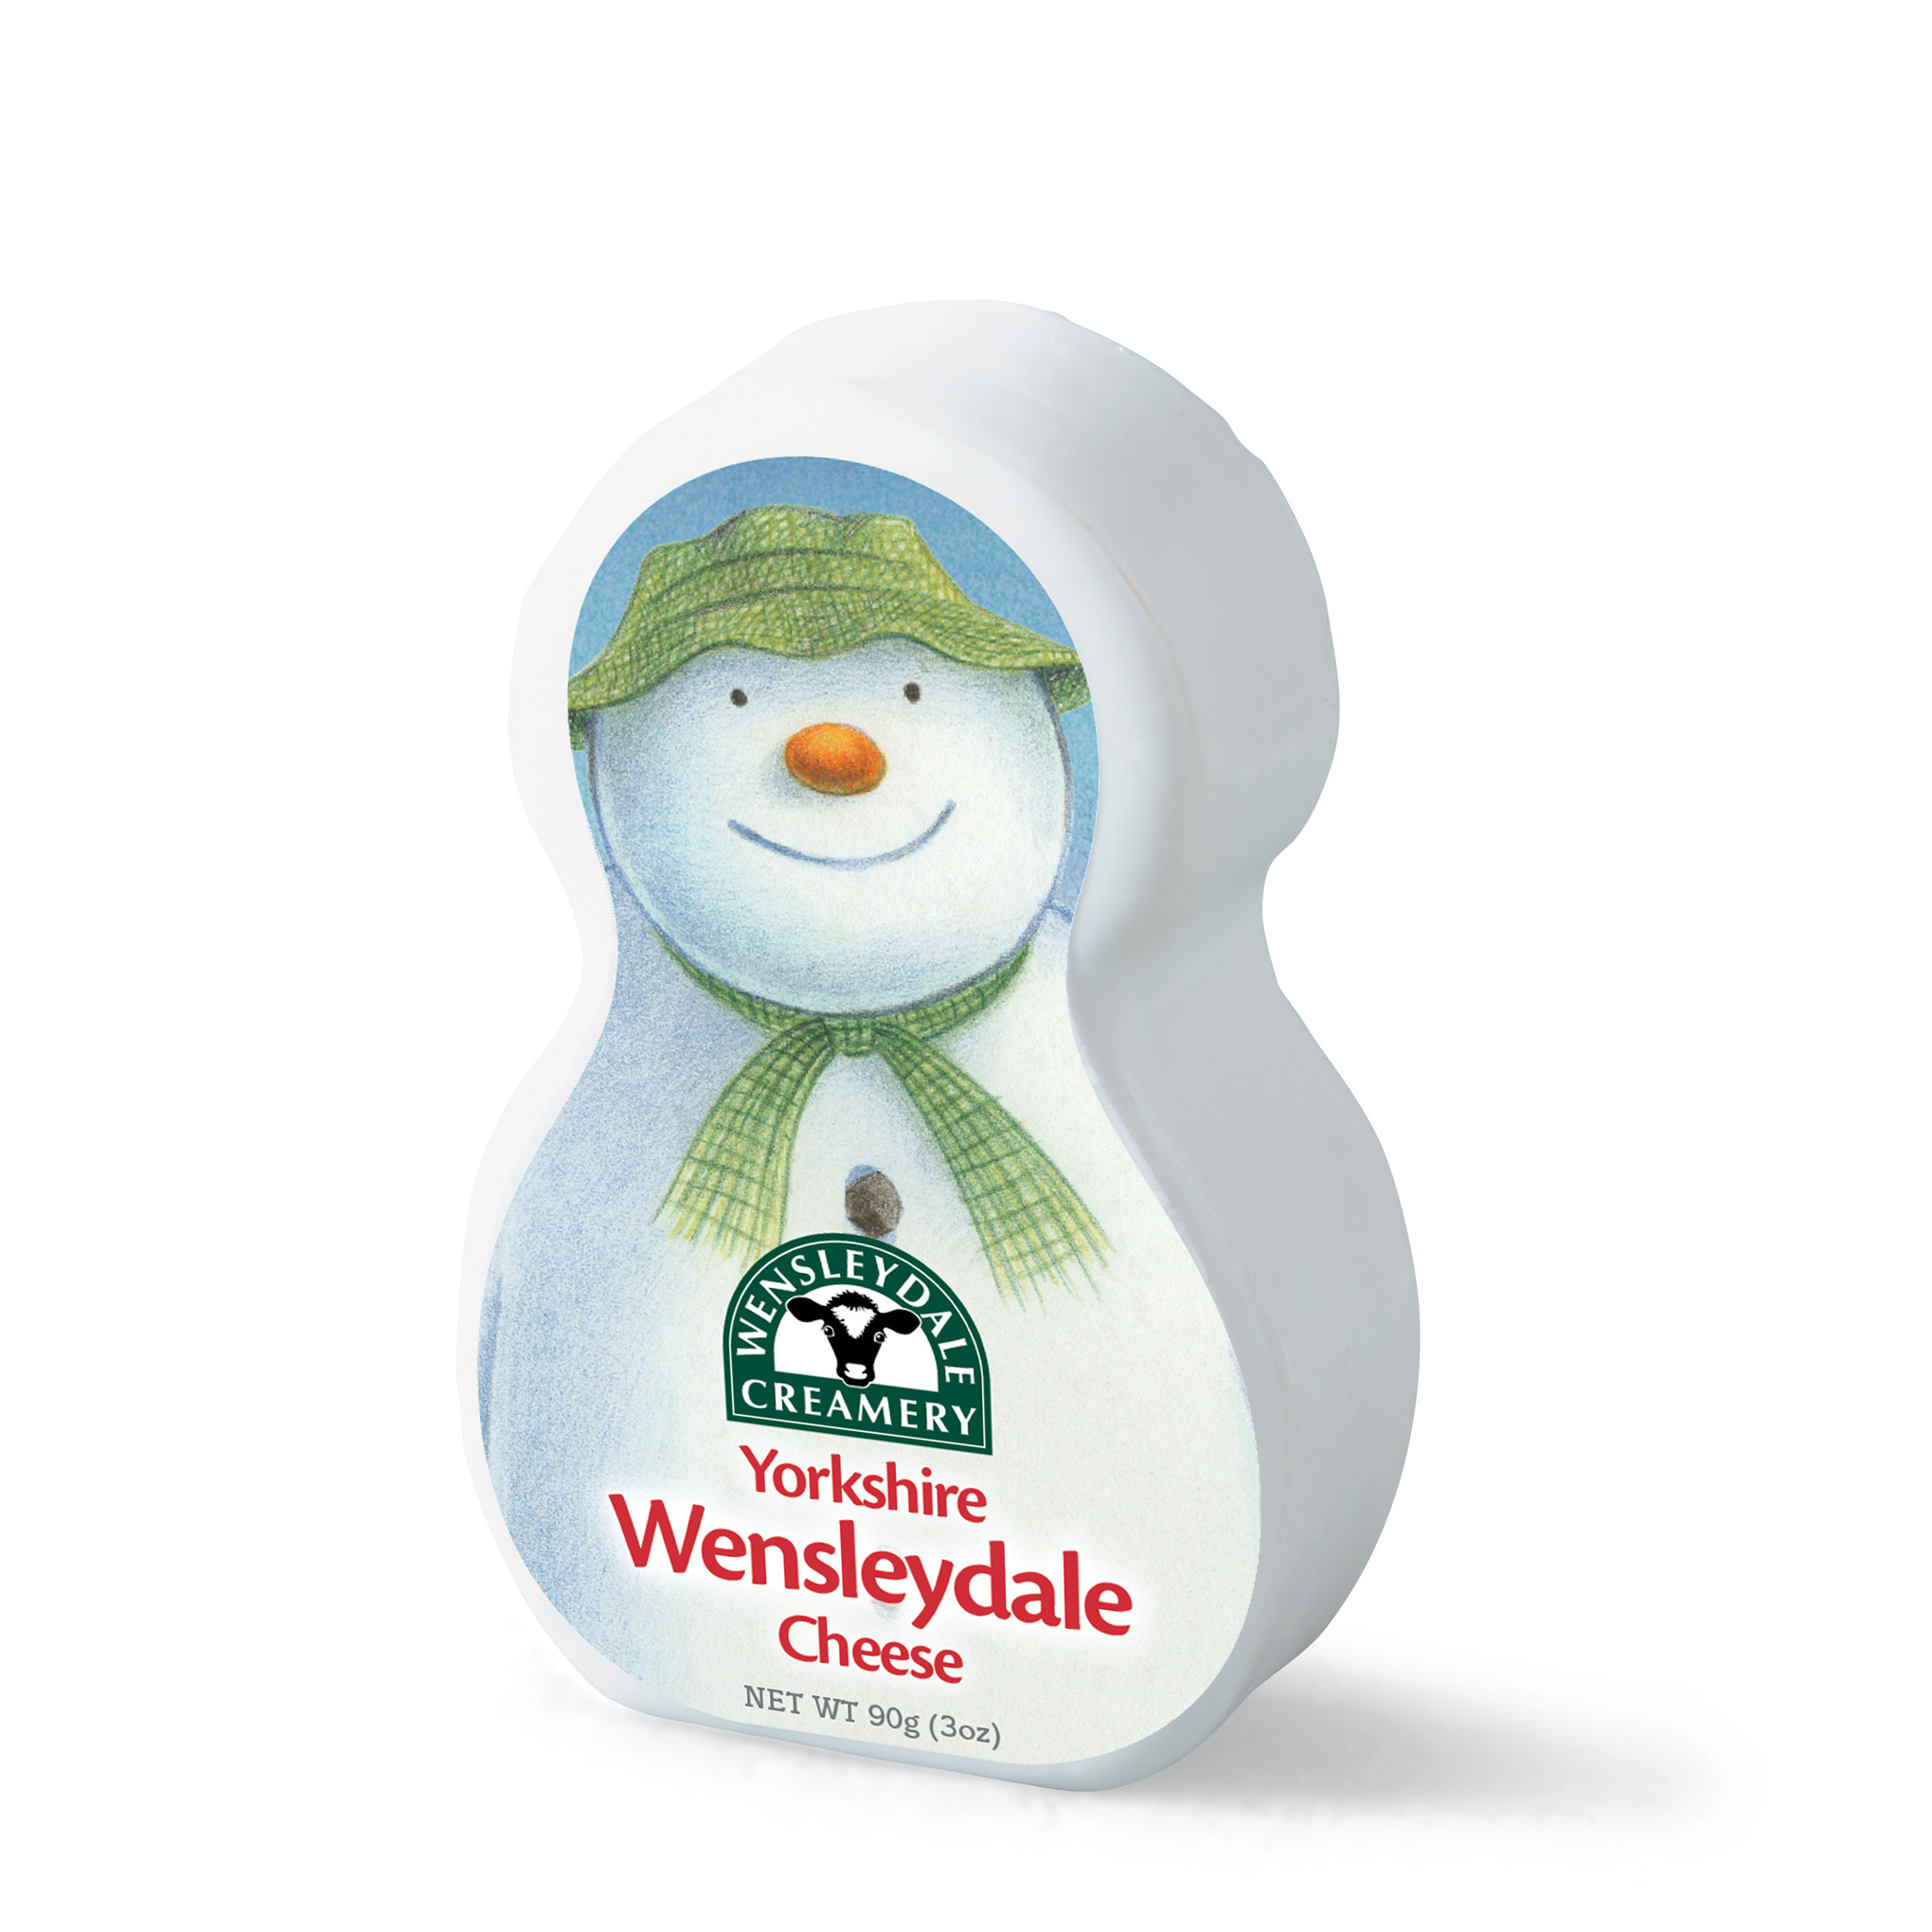 The Wensleydale Creamery adds The Snowman and The Snowdog to its 2013 Christmas line-up